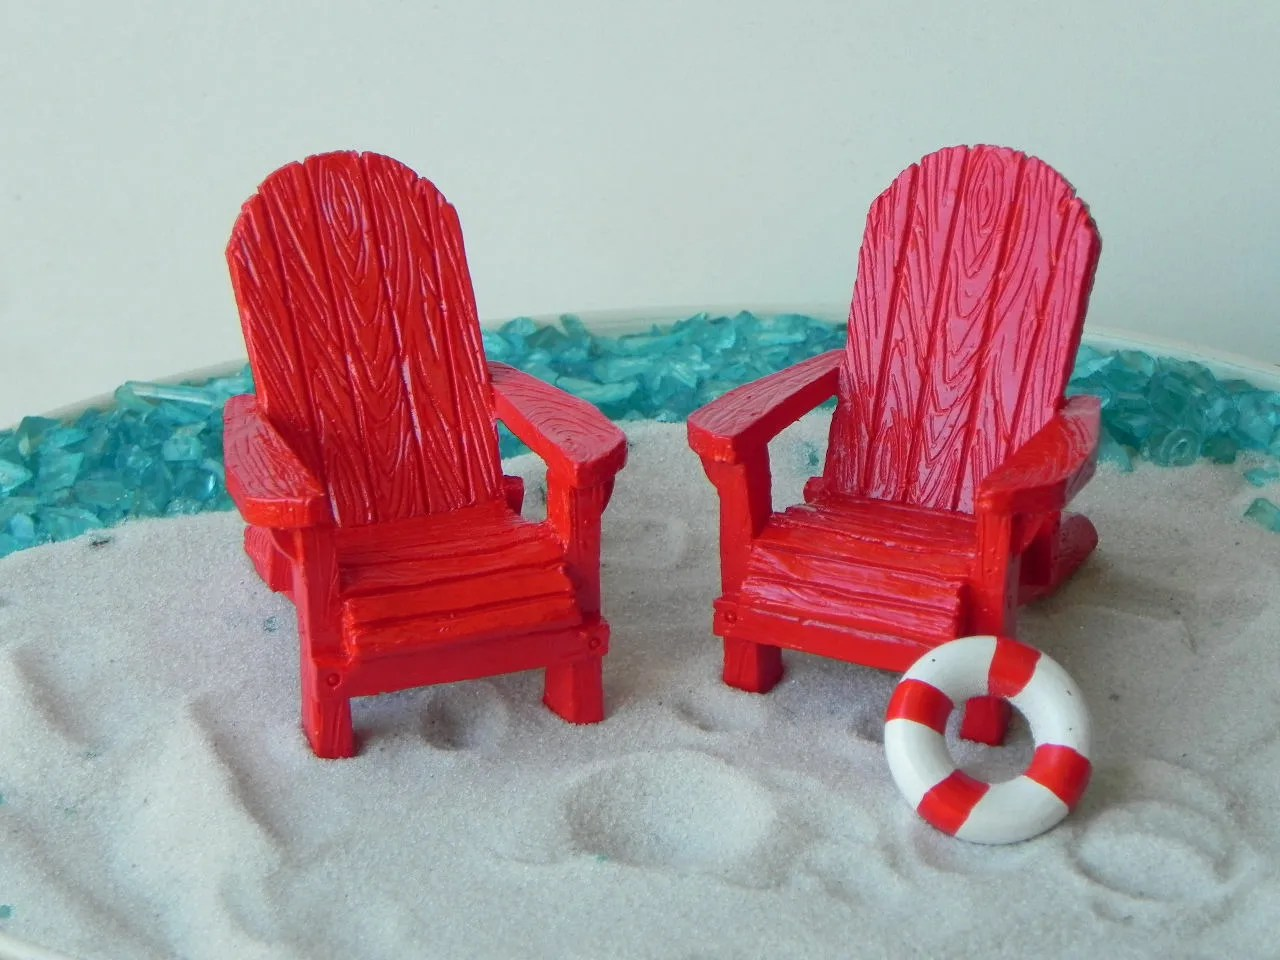 Mini Adirondack Chairs Miniature Adirondack Chair Fairy Beach Garden Supply Red